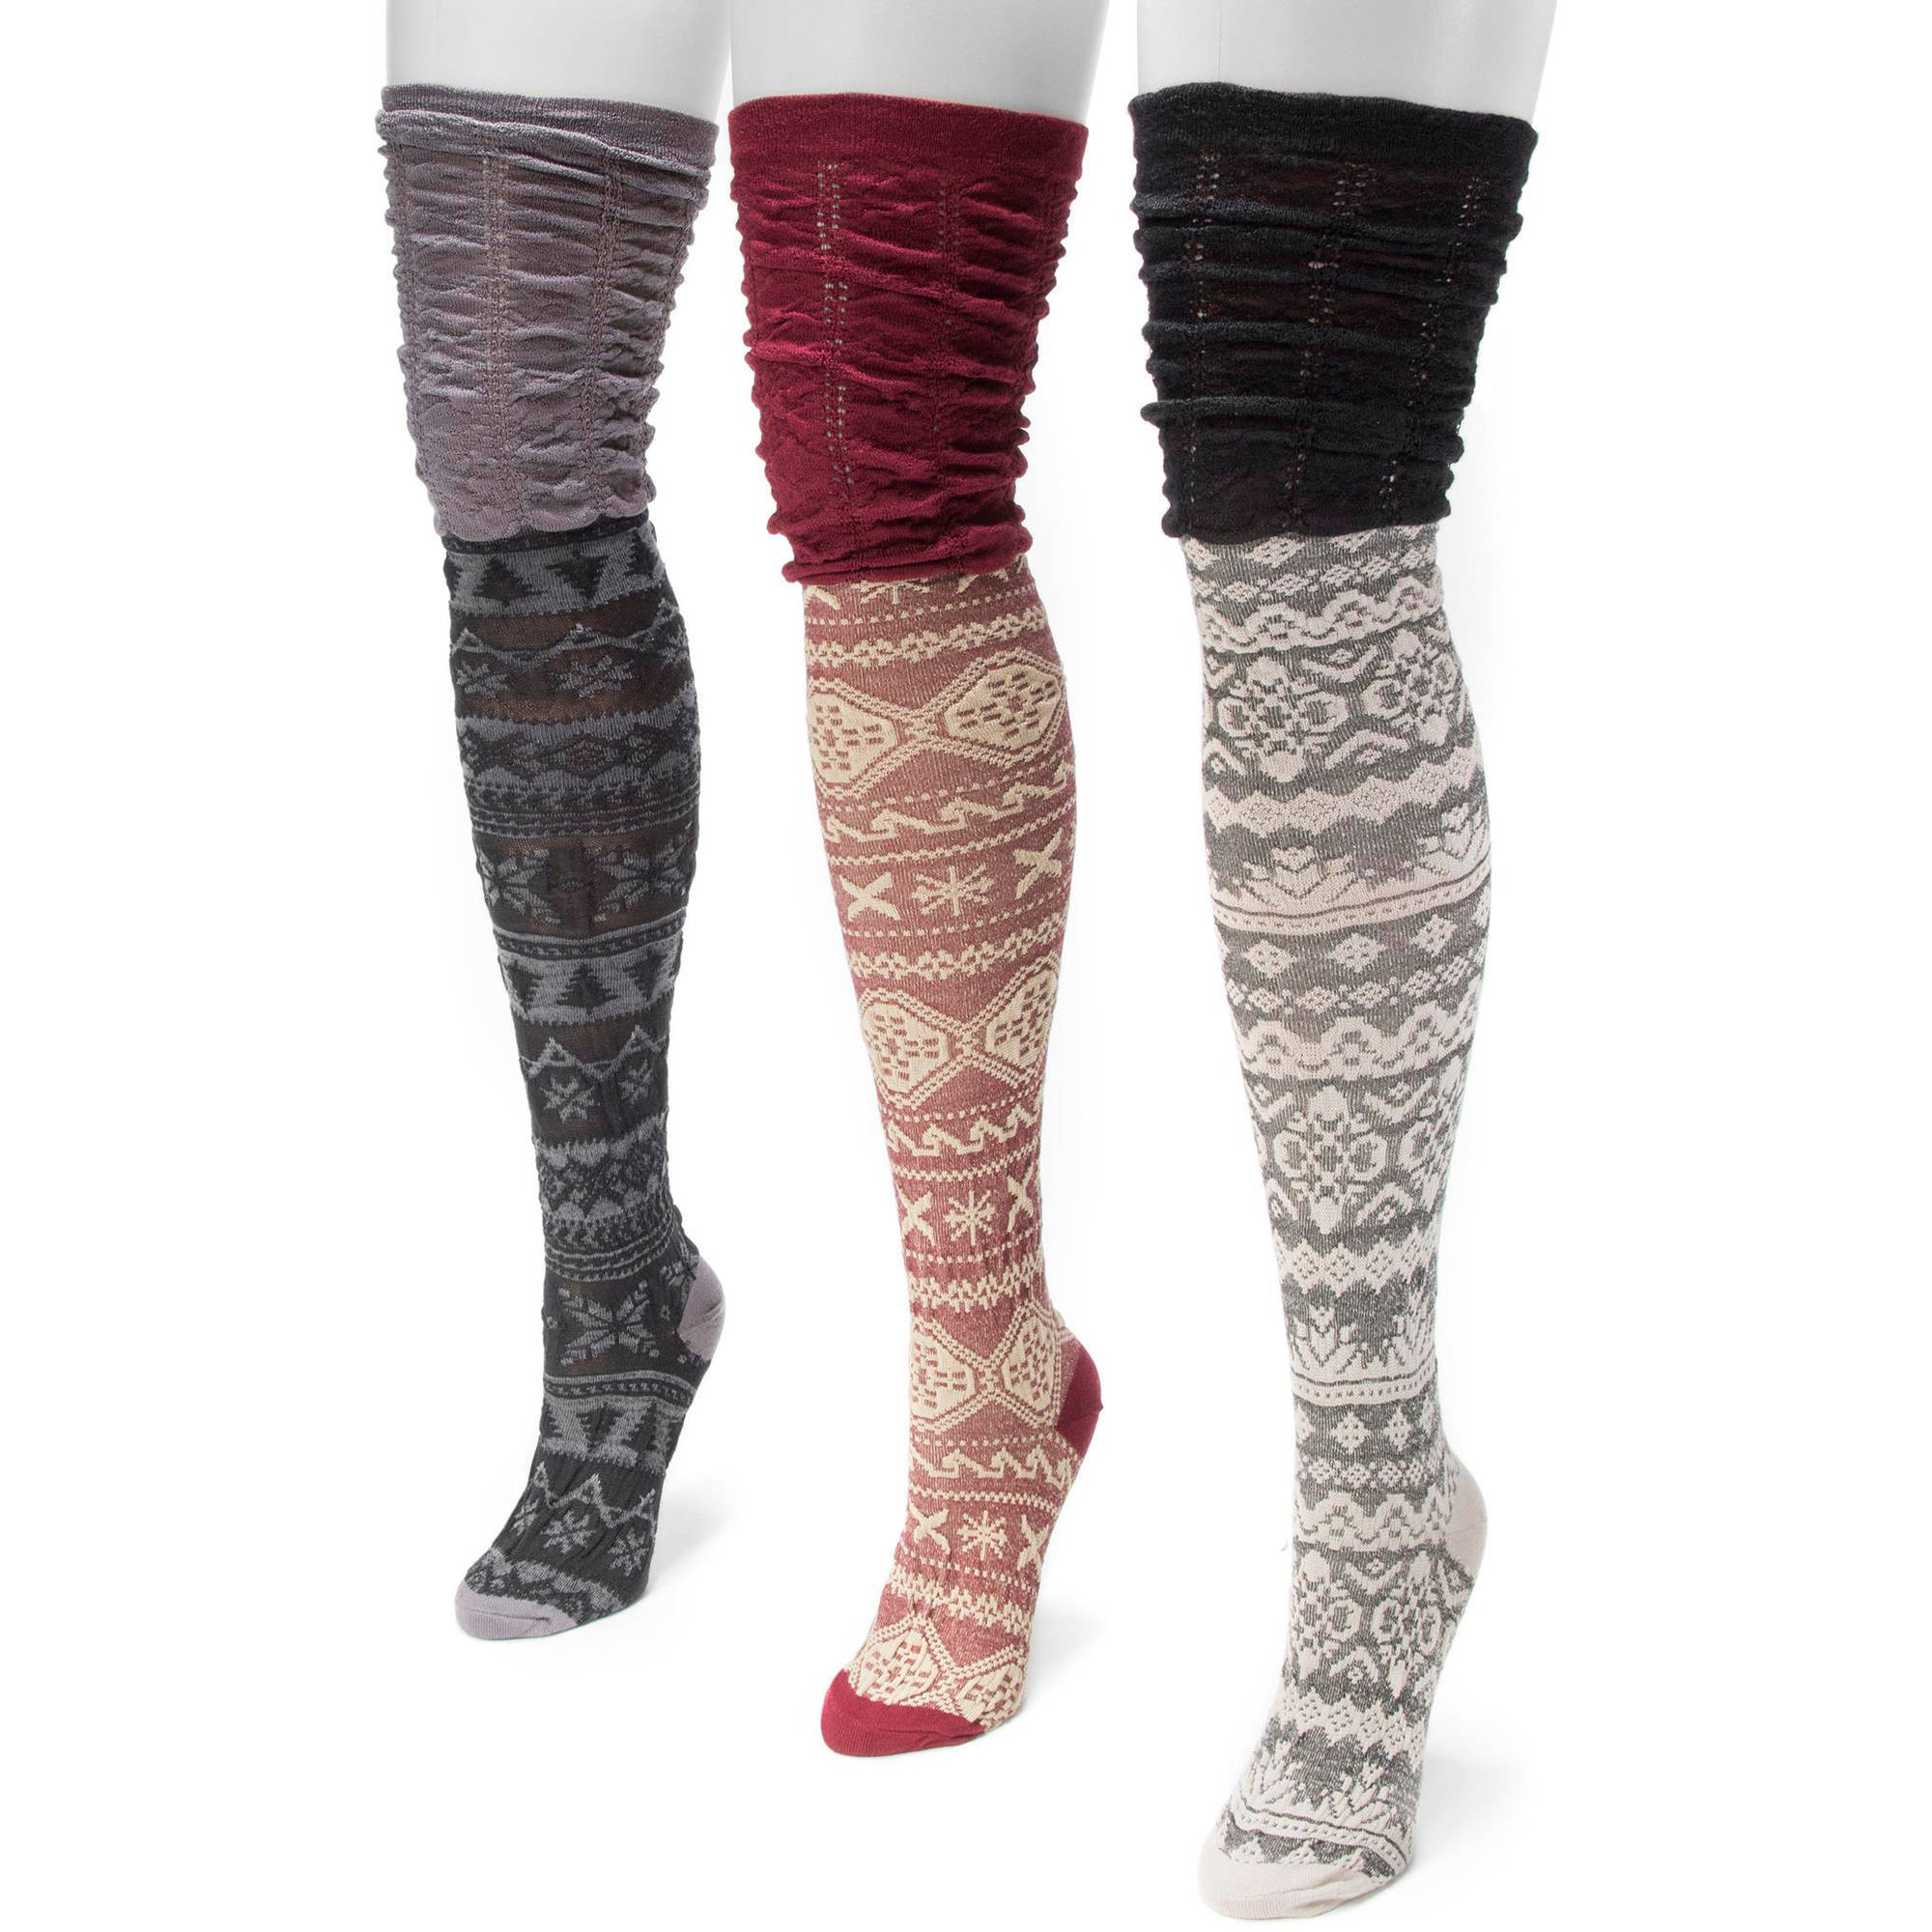 Women's 3 Pair Pack Microfiber Over the Knee Socks